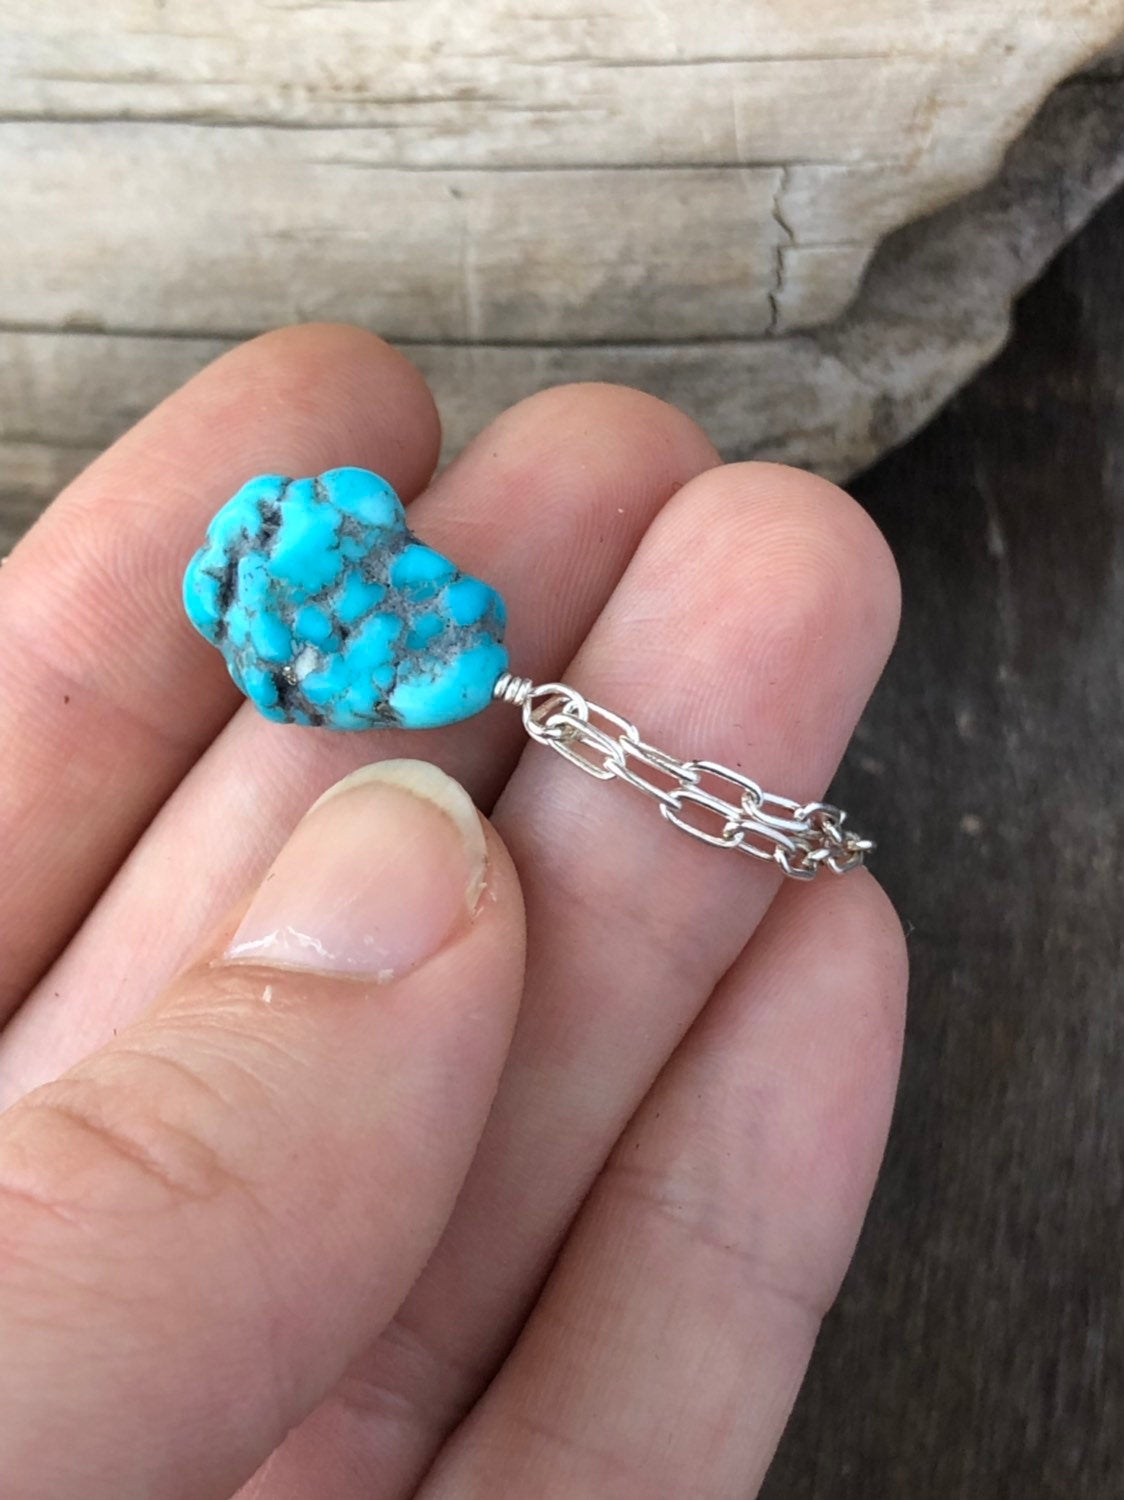 Genuine Turquoise Chain Necklace / Raw Turquoise Nugget / Campitos Mine / Untreated Turquoise Stone Dainty Necklace / Sterling Silver Chain